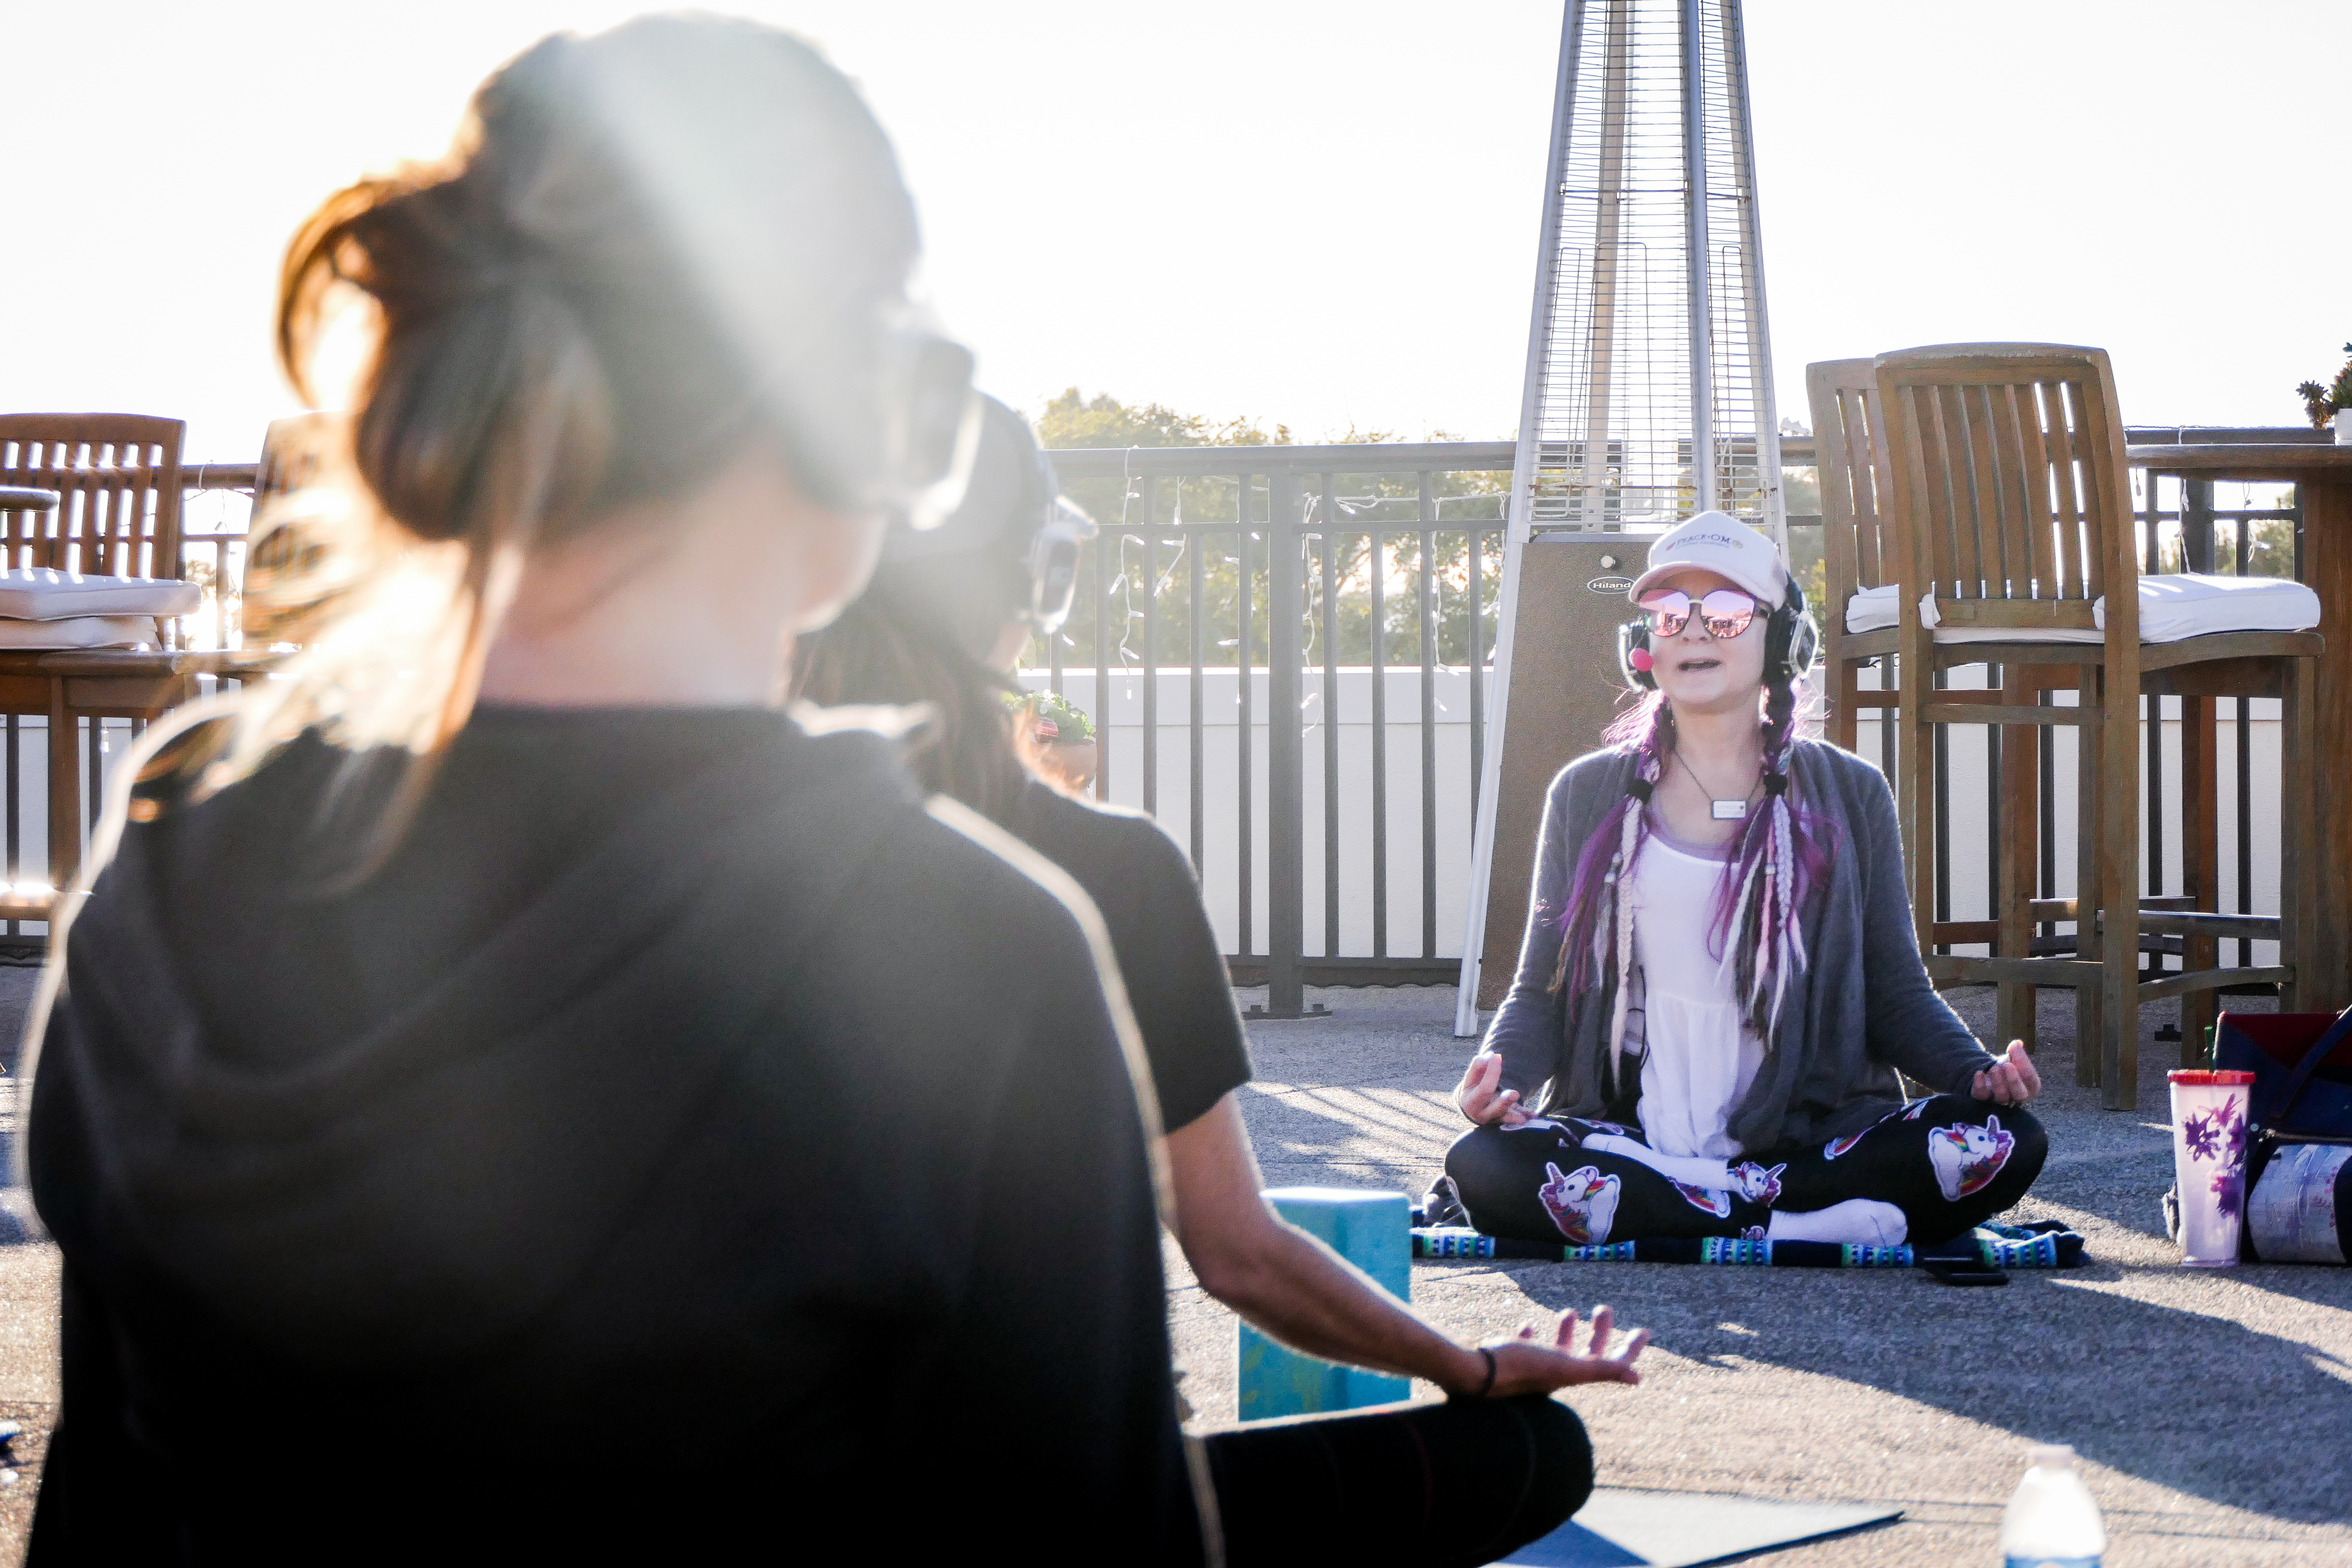 Meditative Vibes at Del Mar Plaza Ocean View Deck